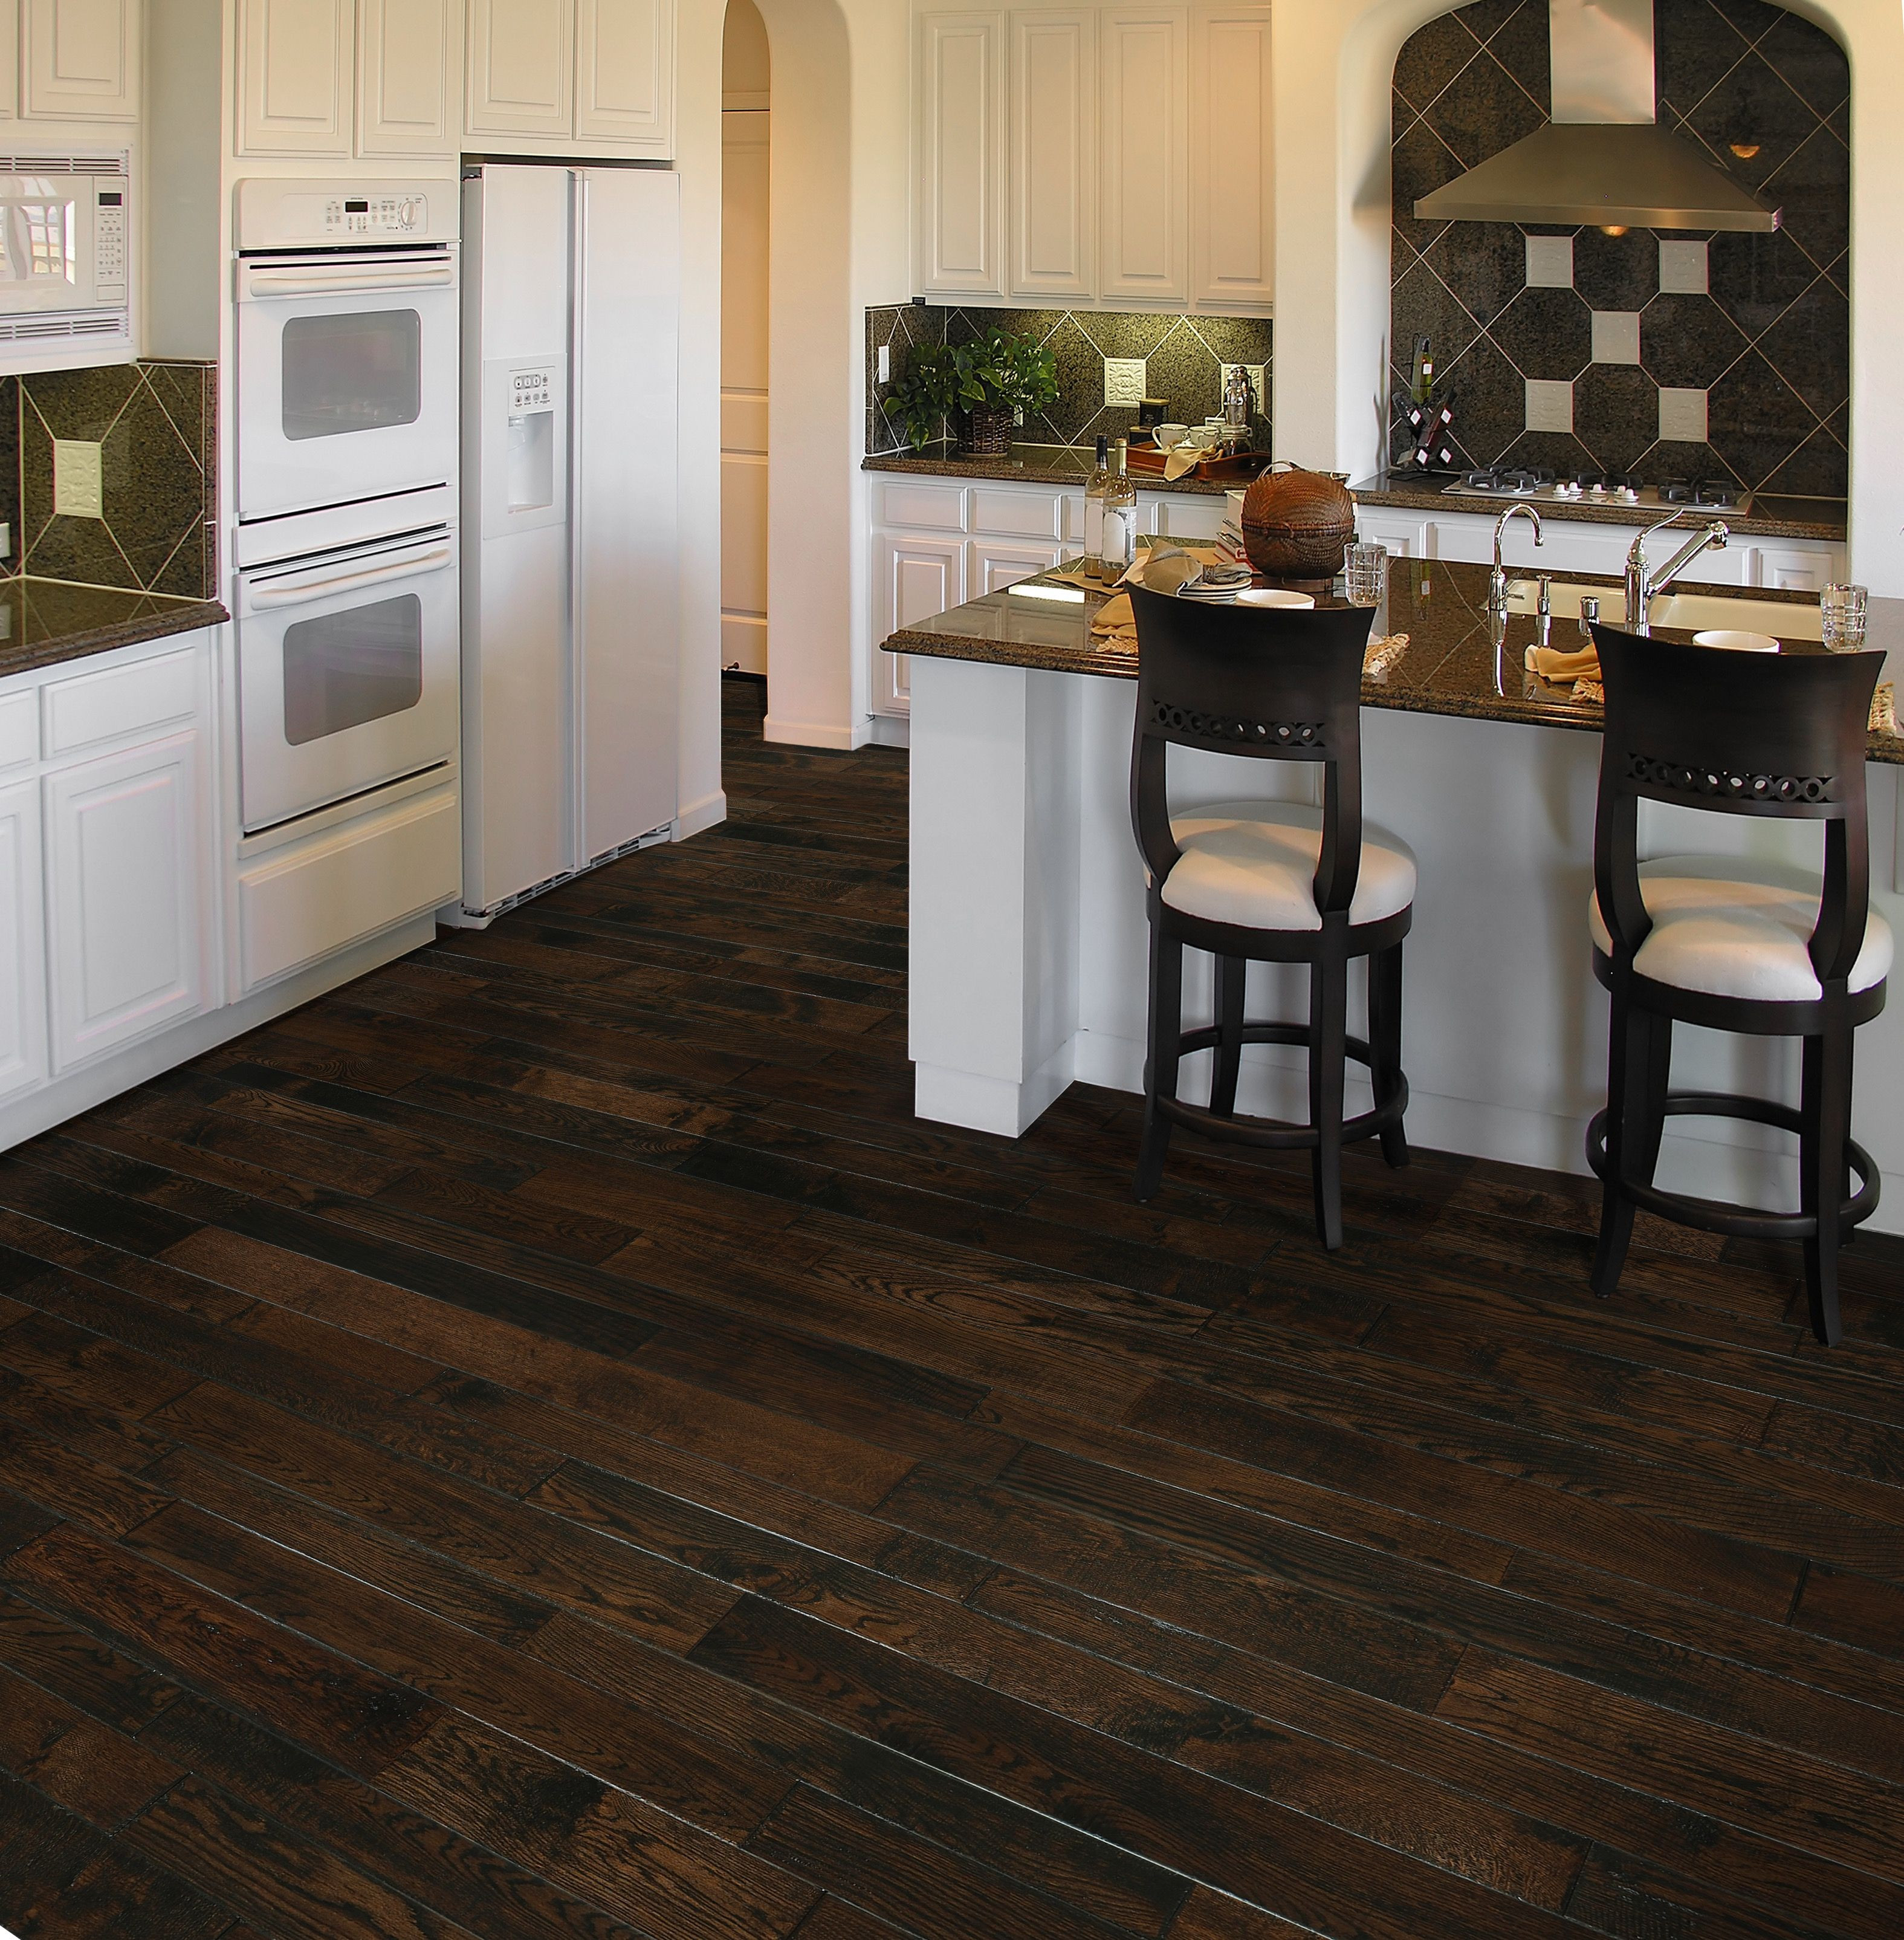 cost to install unfinished hardwood floors of hardwood floor installation floor plan ideas intended for new hardwood floor installation in kansas city by svb wood floors we install new wood floors